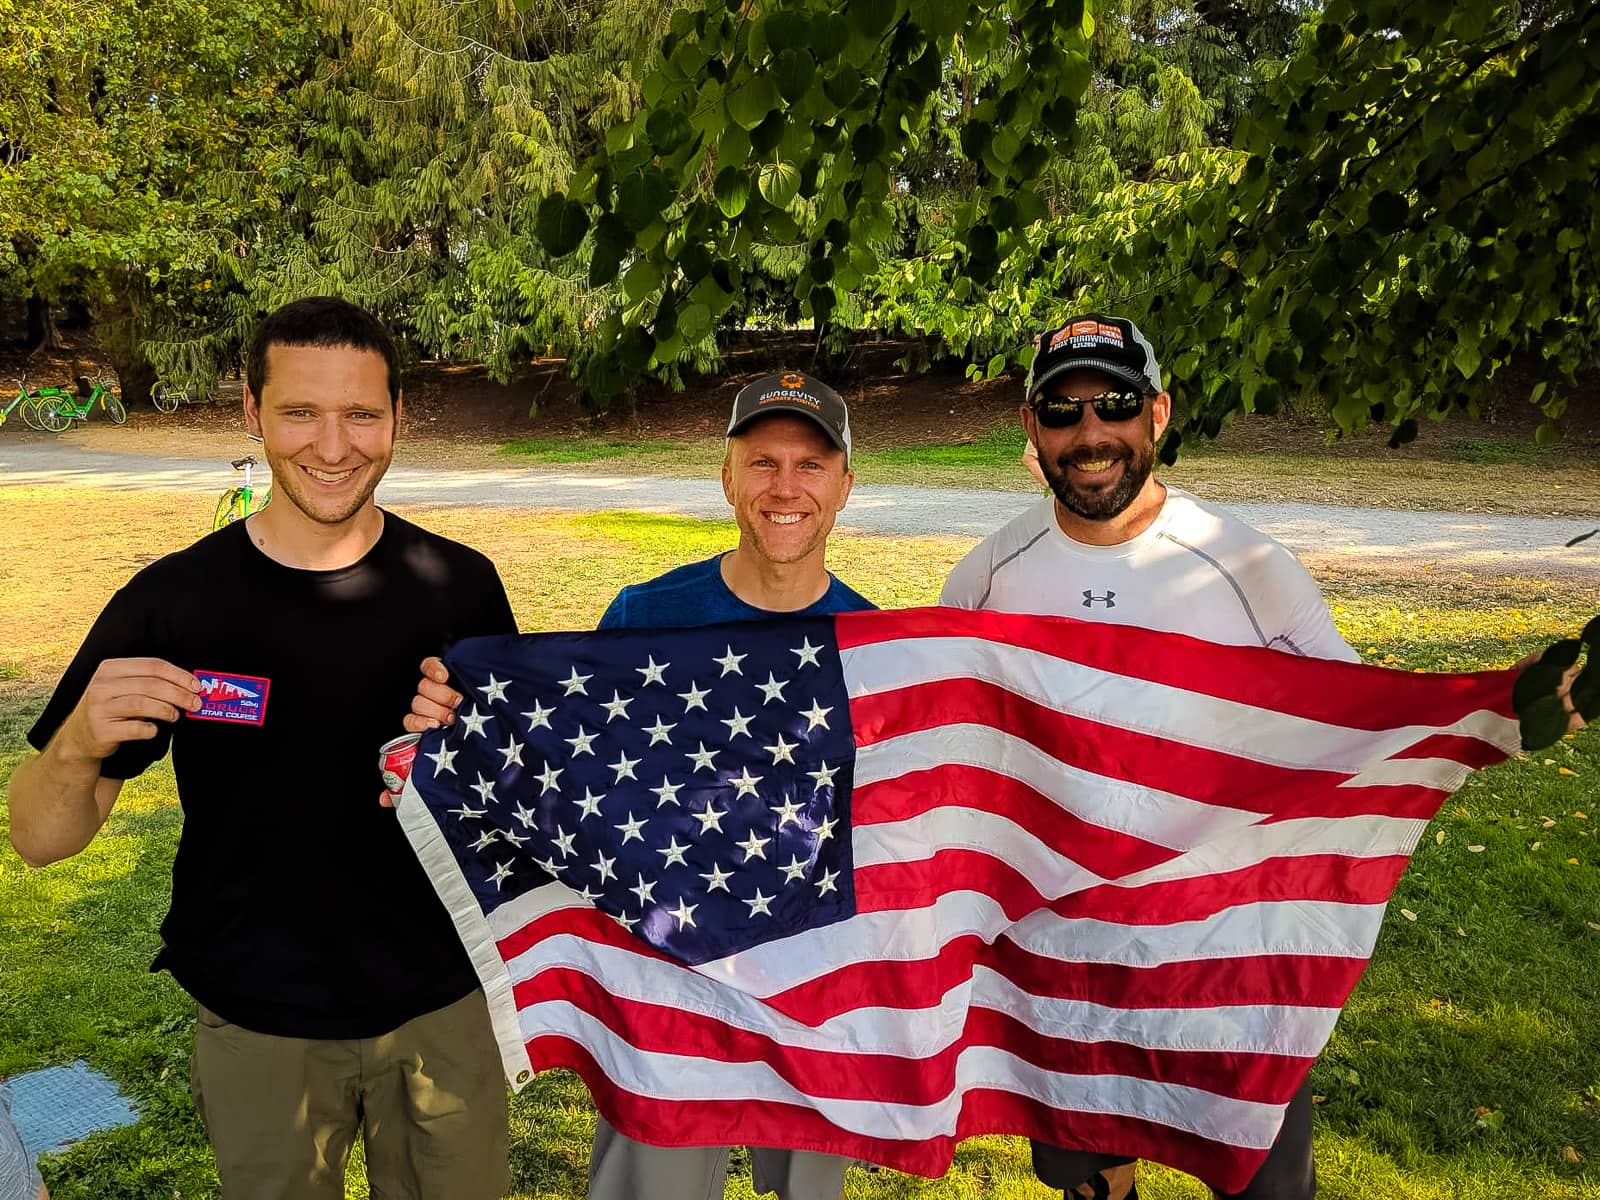 GORUCK Star Course Event Tips & Advice - All Day Ruckoff